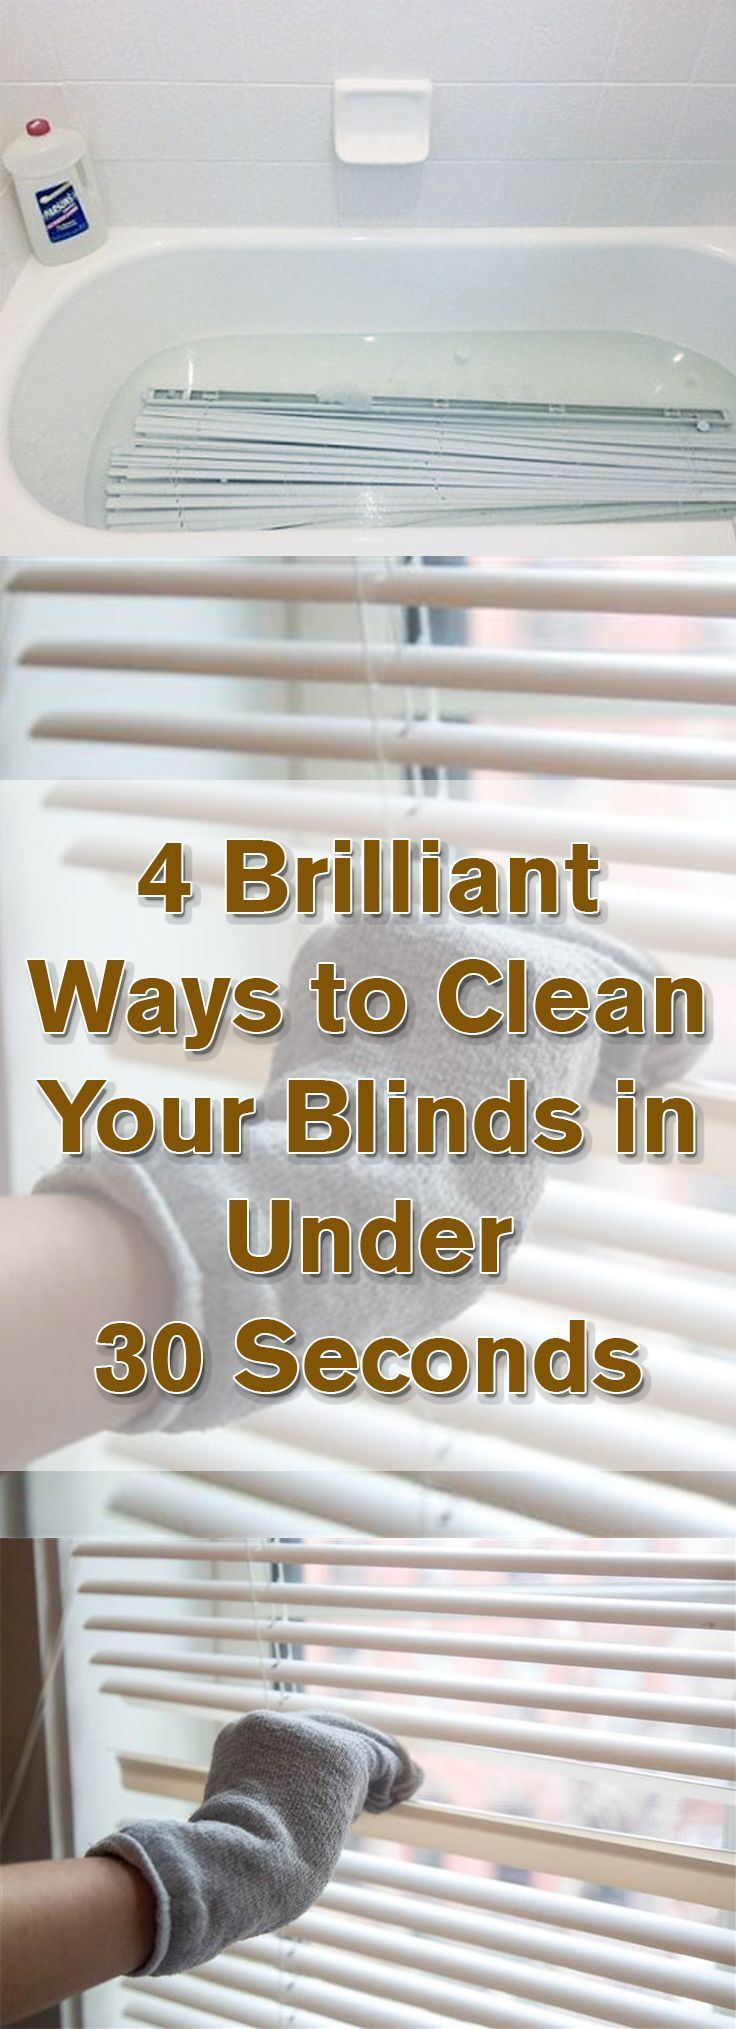 1023 best cleaning images on pinterest cleaning hacks cleaning